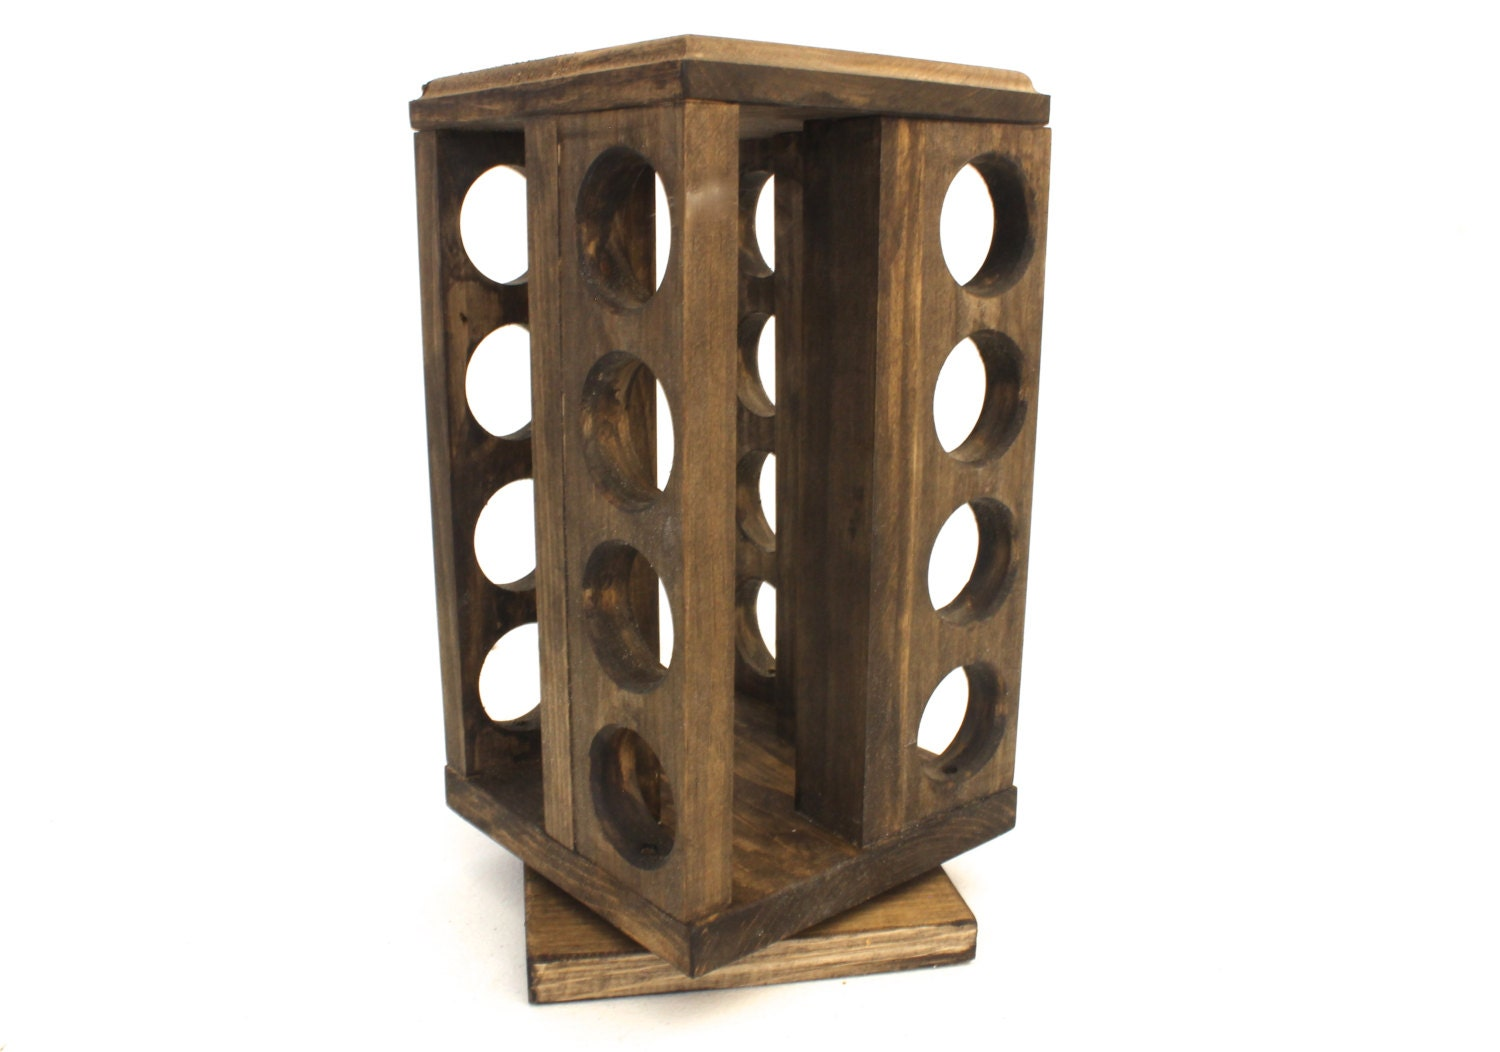 spice rack holder wooden 2 tier spice rack holder holds upto 10 spice and broom holder. Black Bedroom Furniture Sets. Home Design Ideas